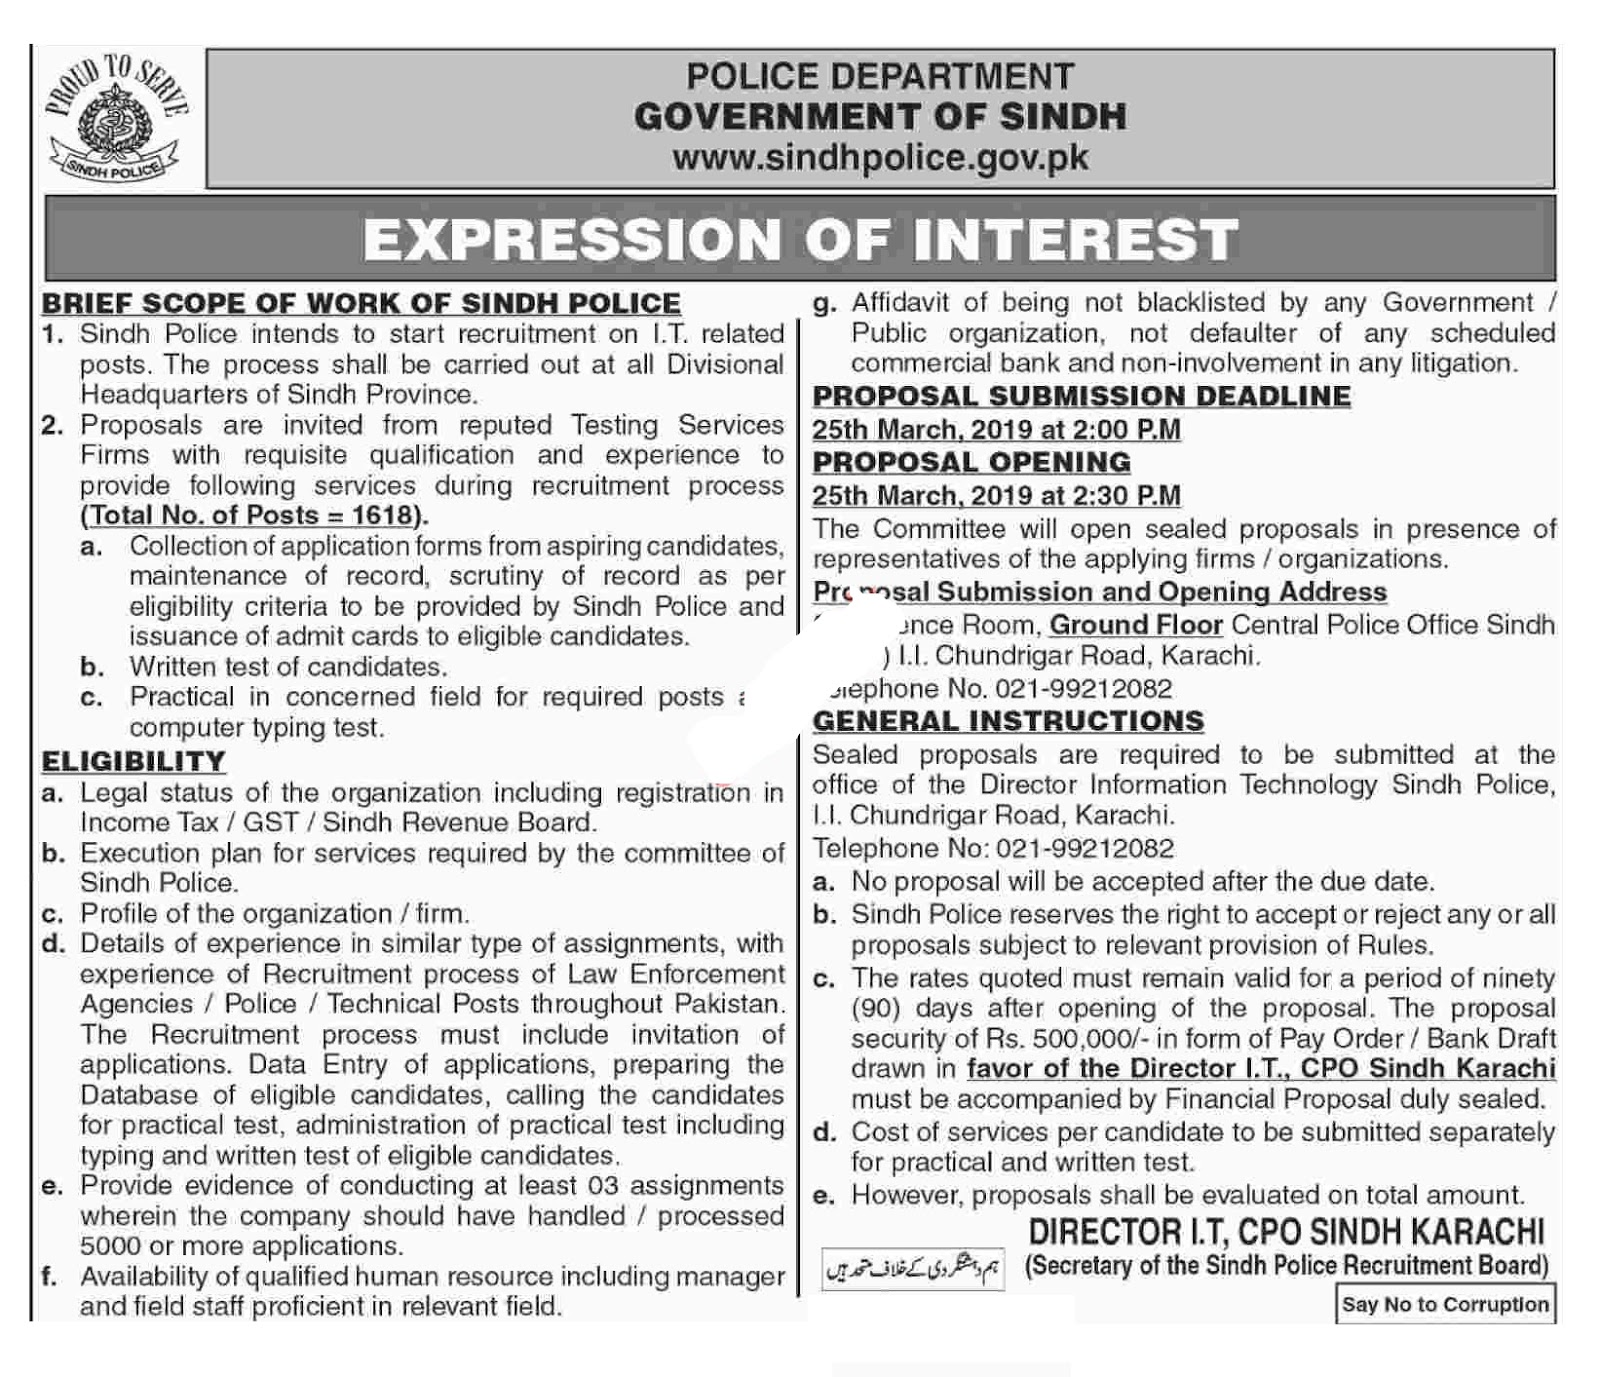 Sindh Police Jobs In Pakistan 2019 - Job collects